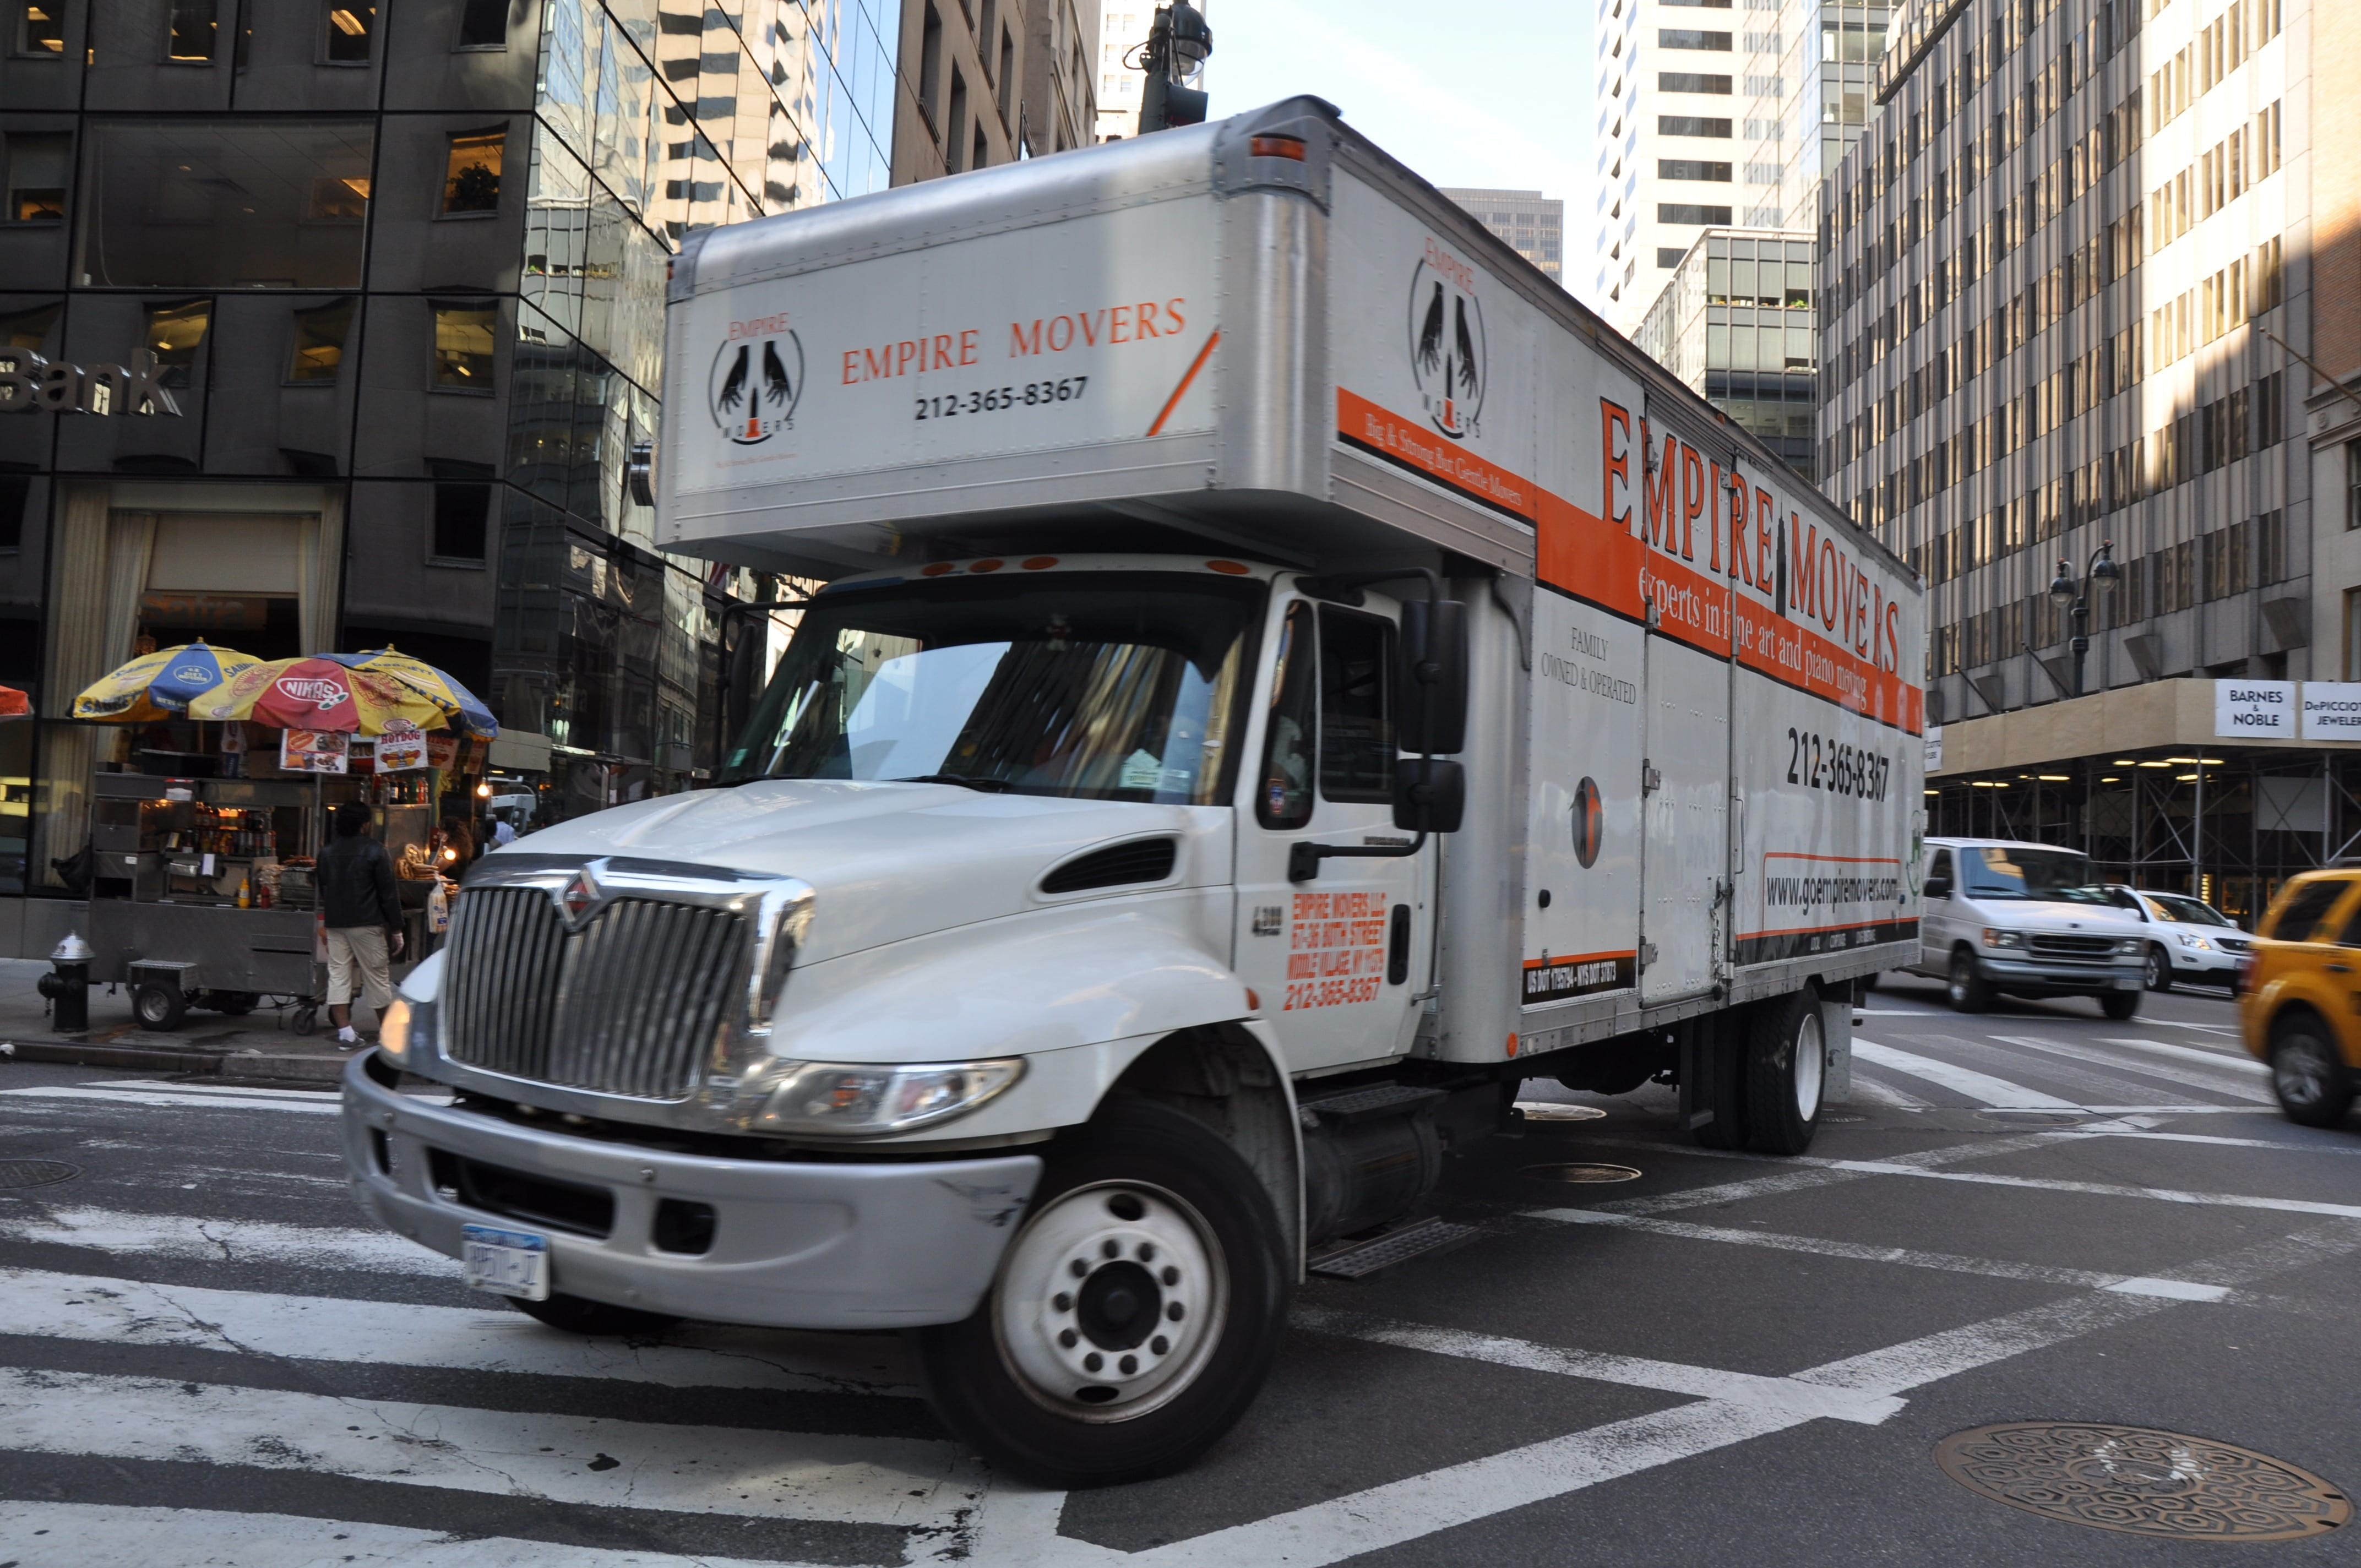 Empire movers brooklyn and new york moving to brooklyn